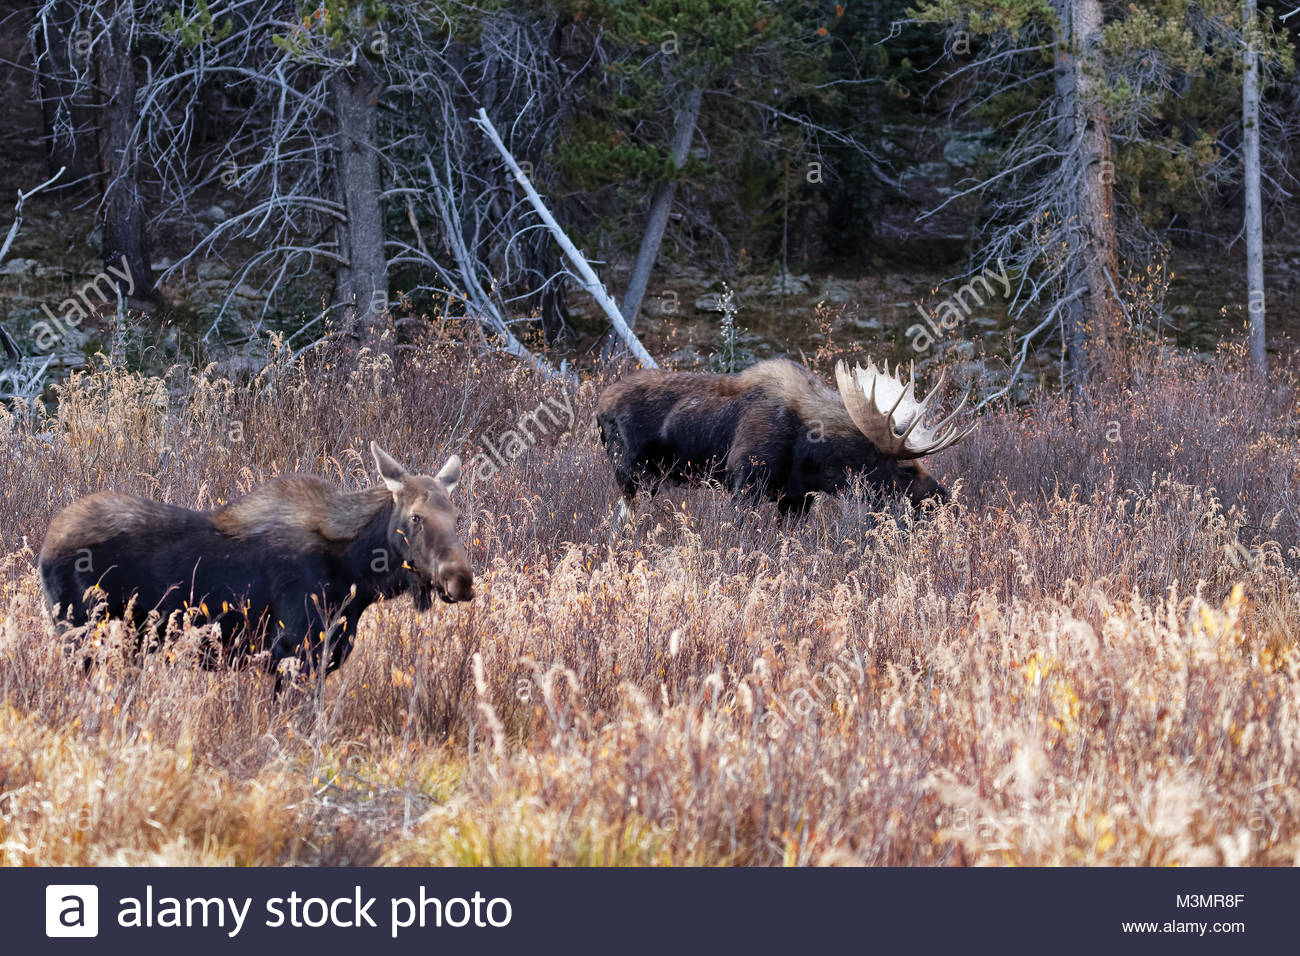 Bull Moose with cow moose in field - Stock Image